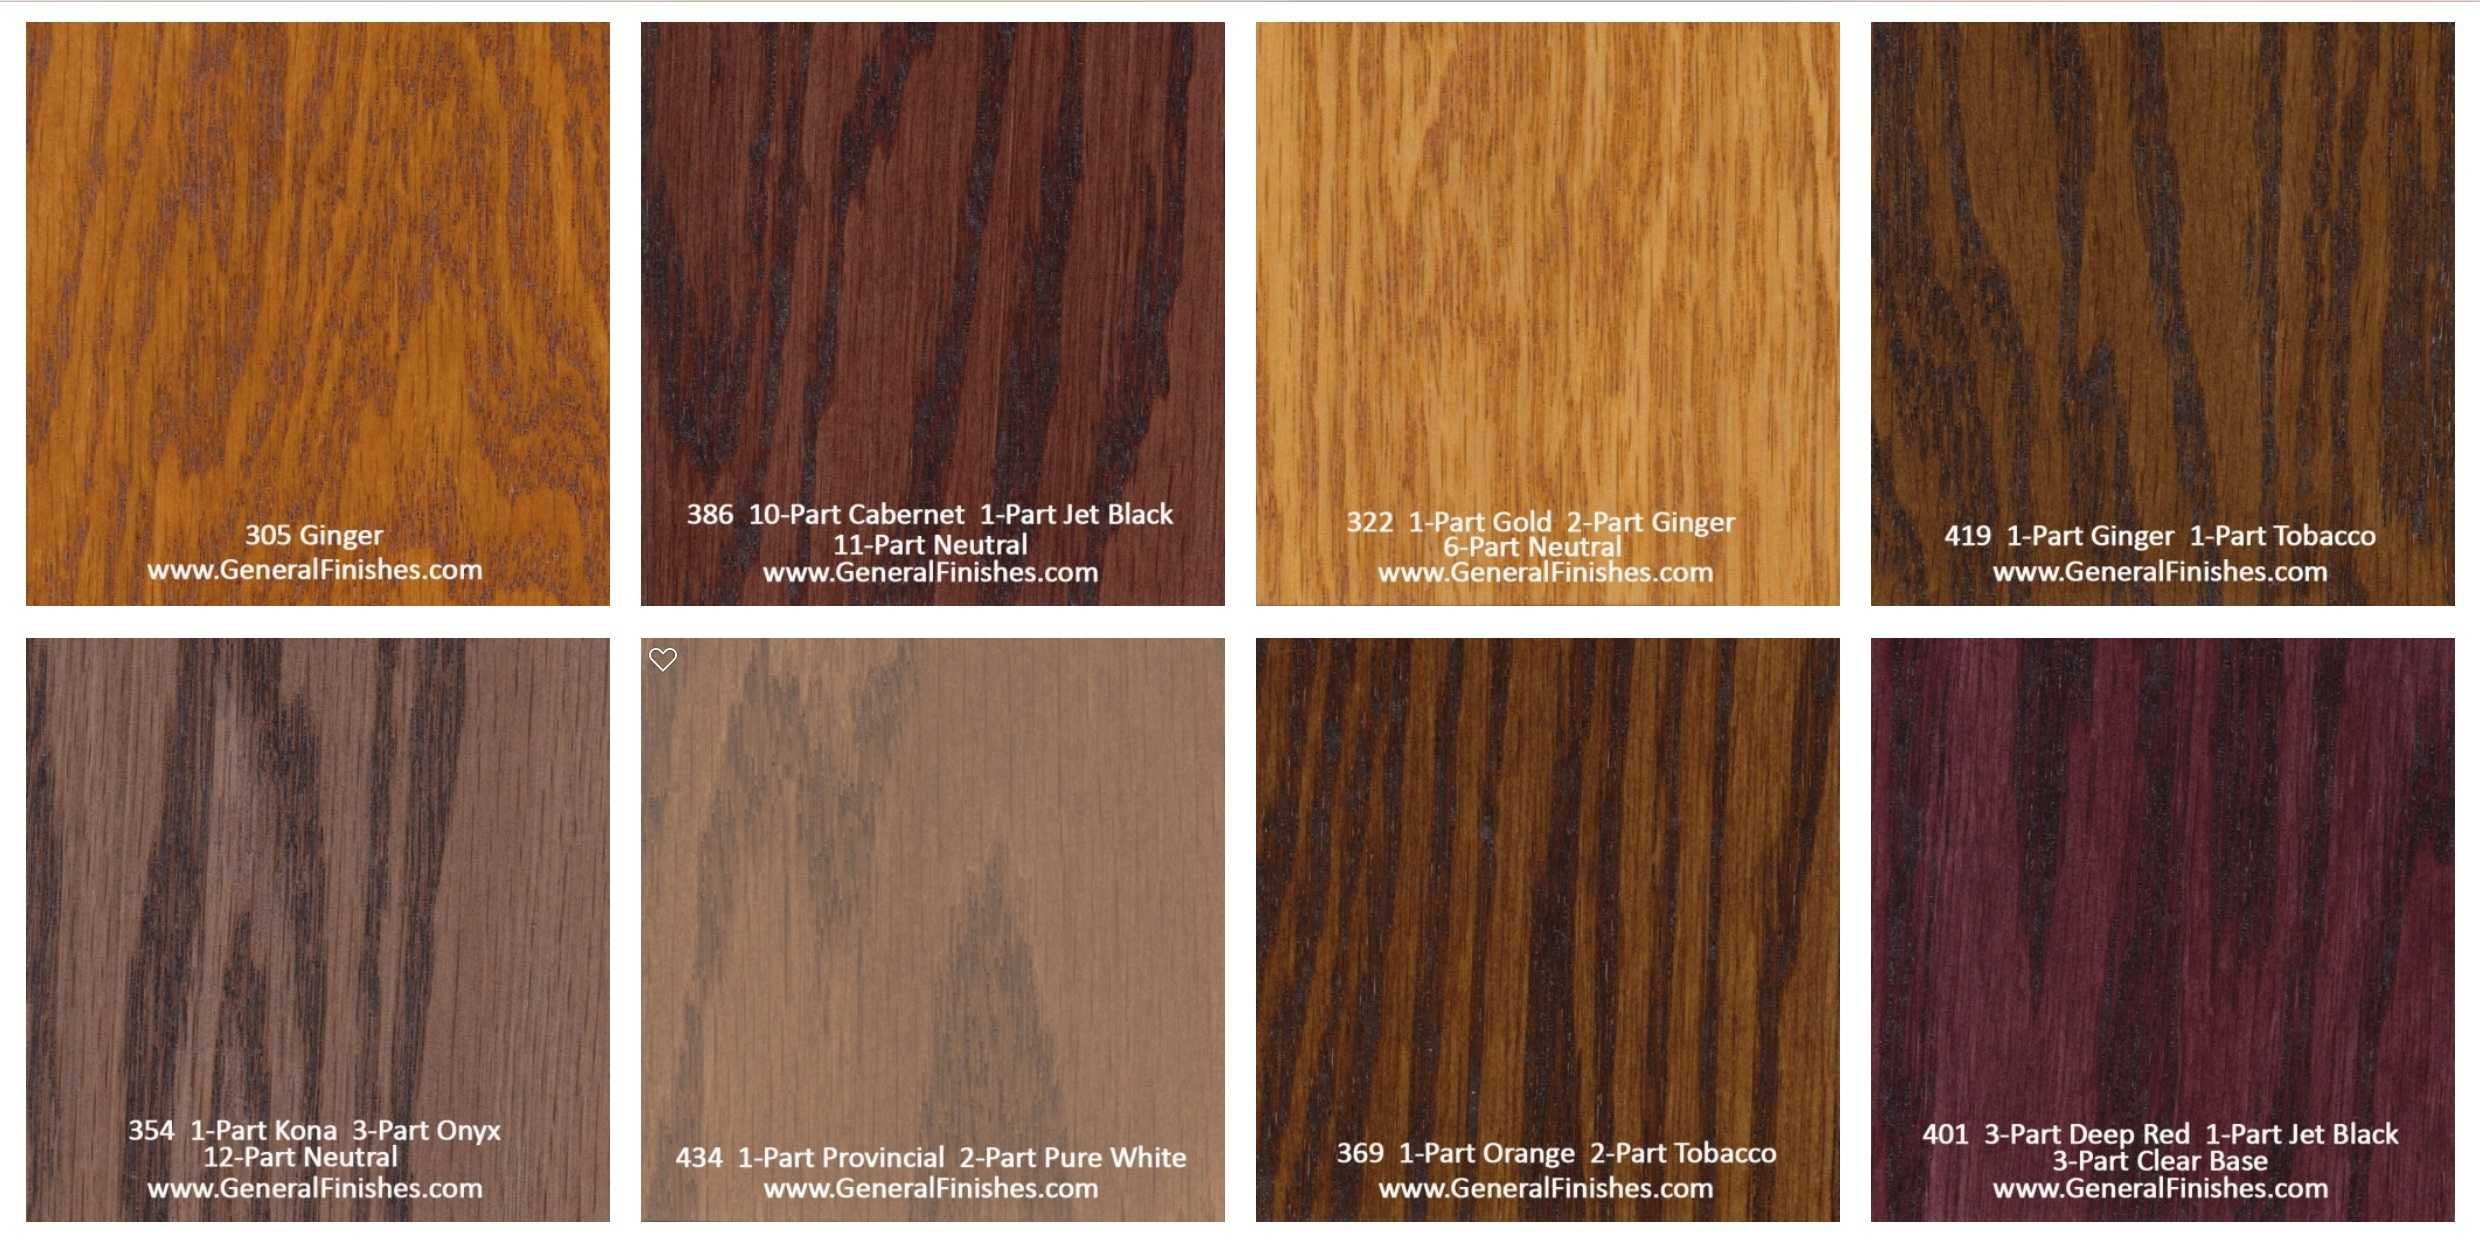 General finishes pro floor stain color swatch chart for for Different colors of hardwood floors